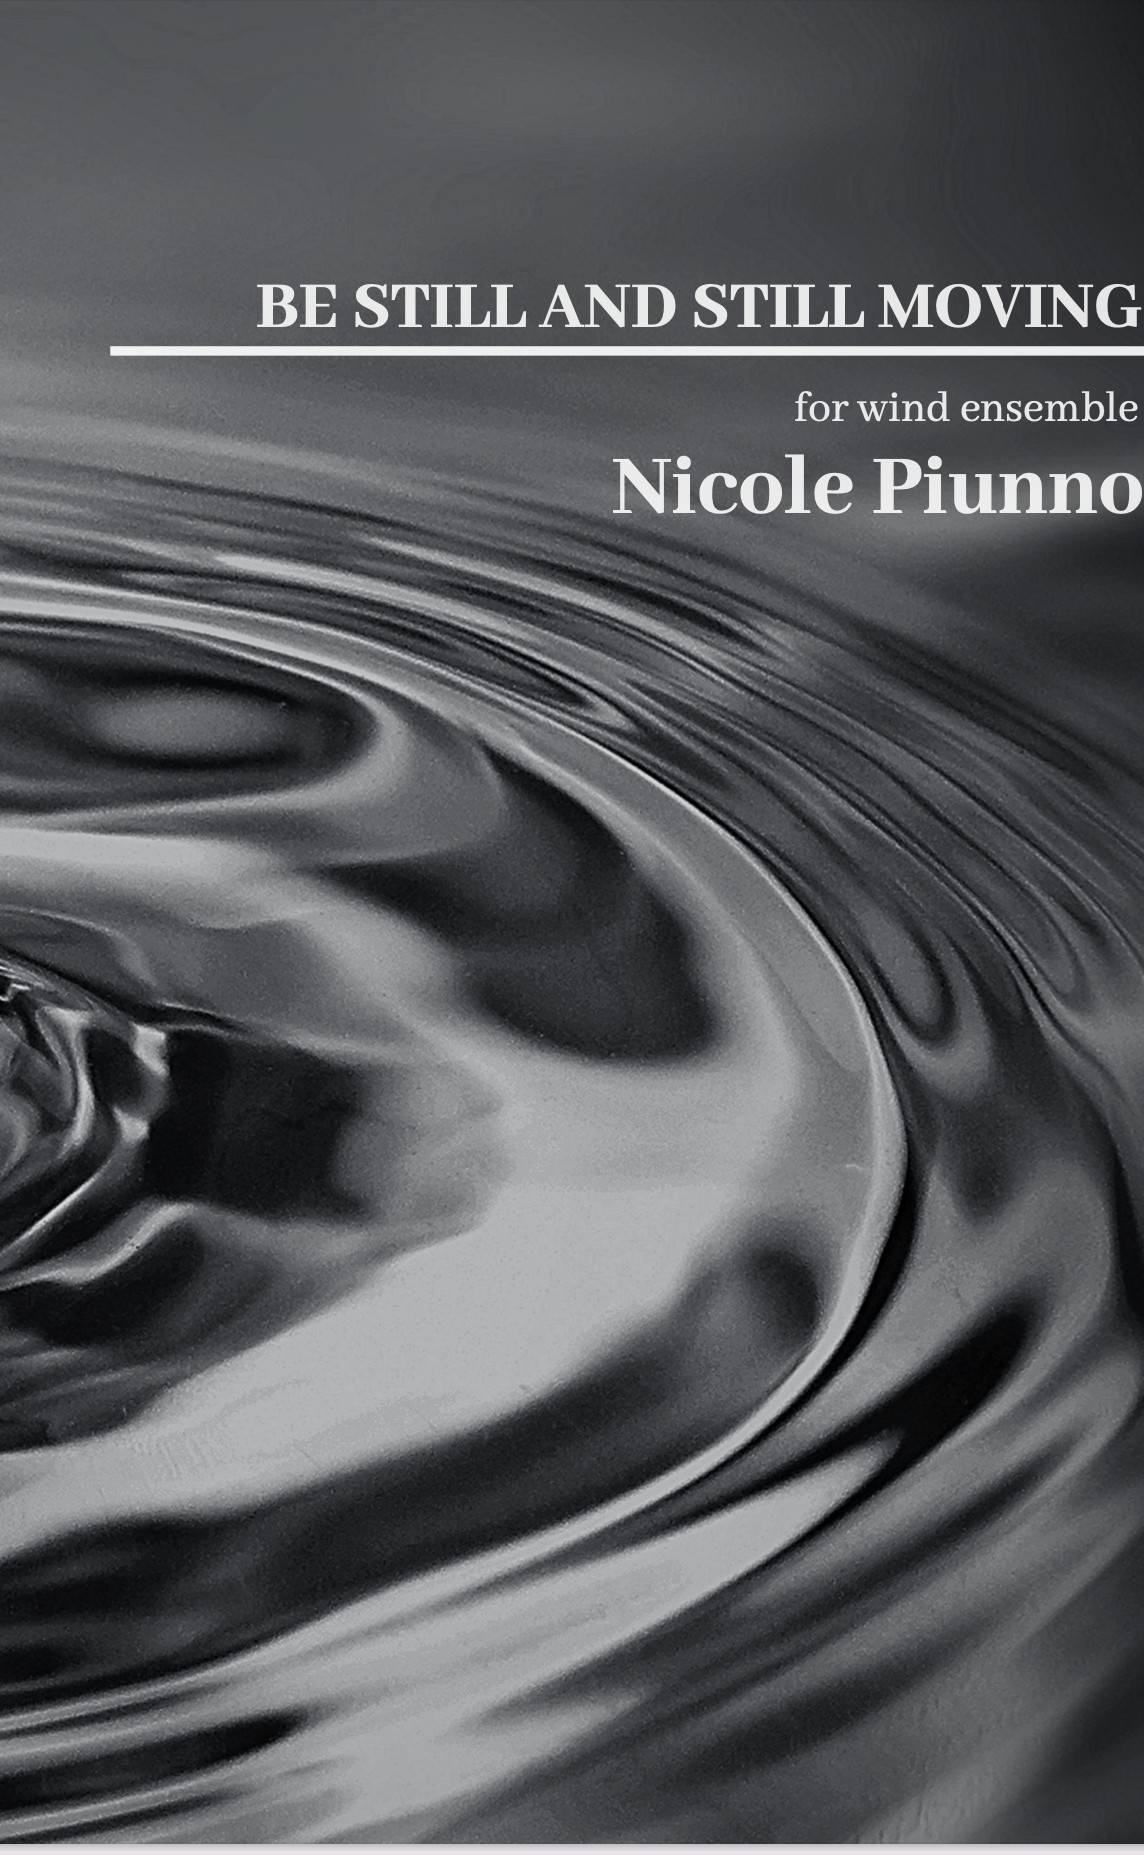 Be Still And Still Moving (Score Only) by Nicole Piunno